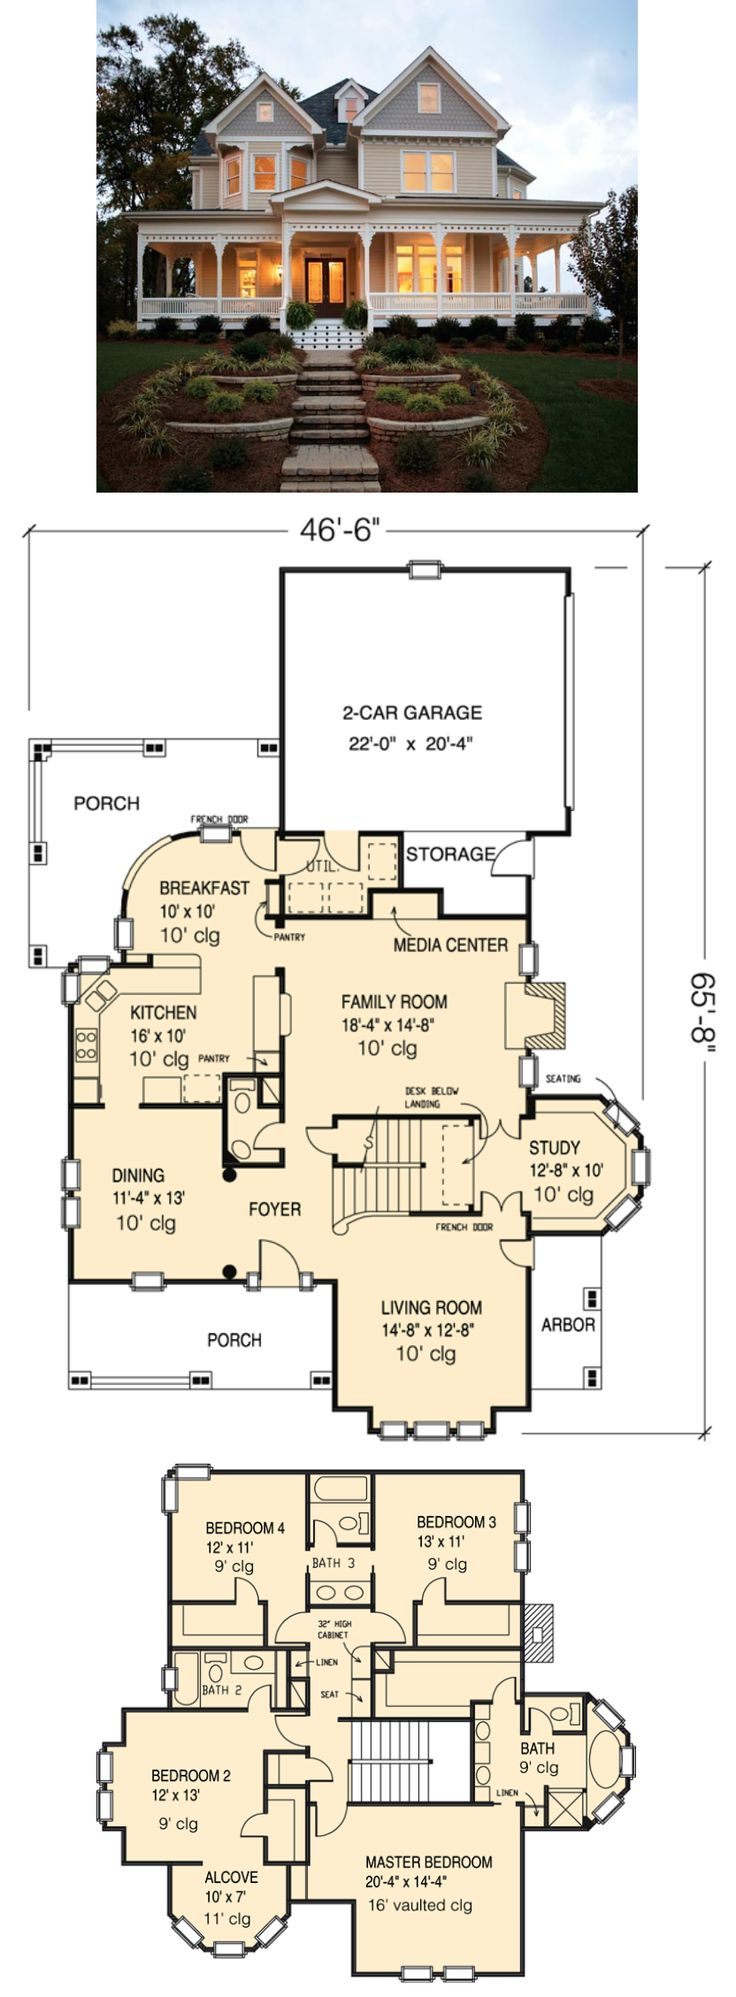 Best 25+ Farmhouse Plans Ideas Only On Pinterest | Farmhouse House Plans,  Farmhouse Home Plans And Farmhouse Floor Plans Part 69